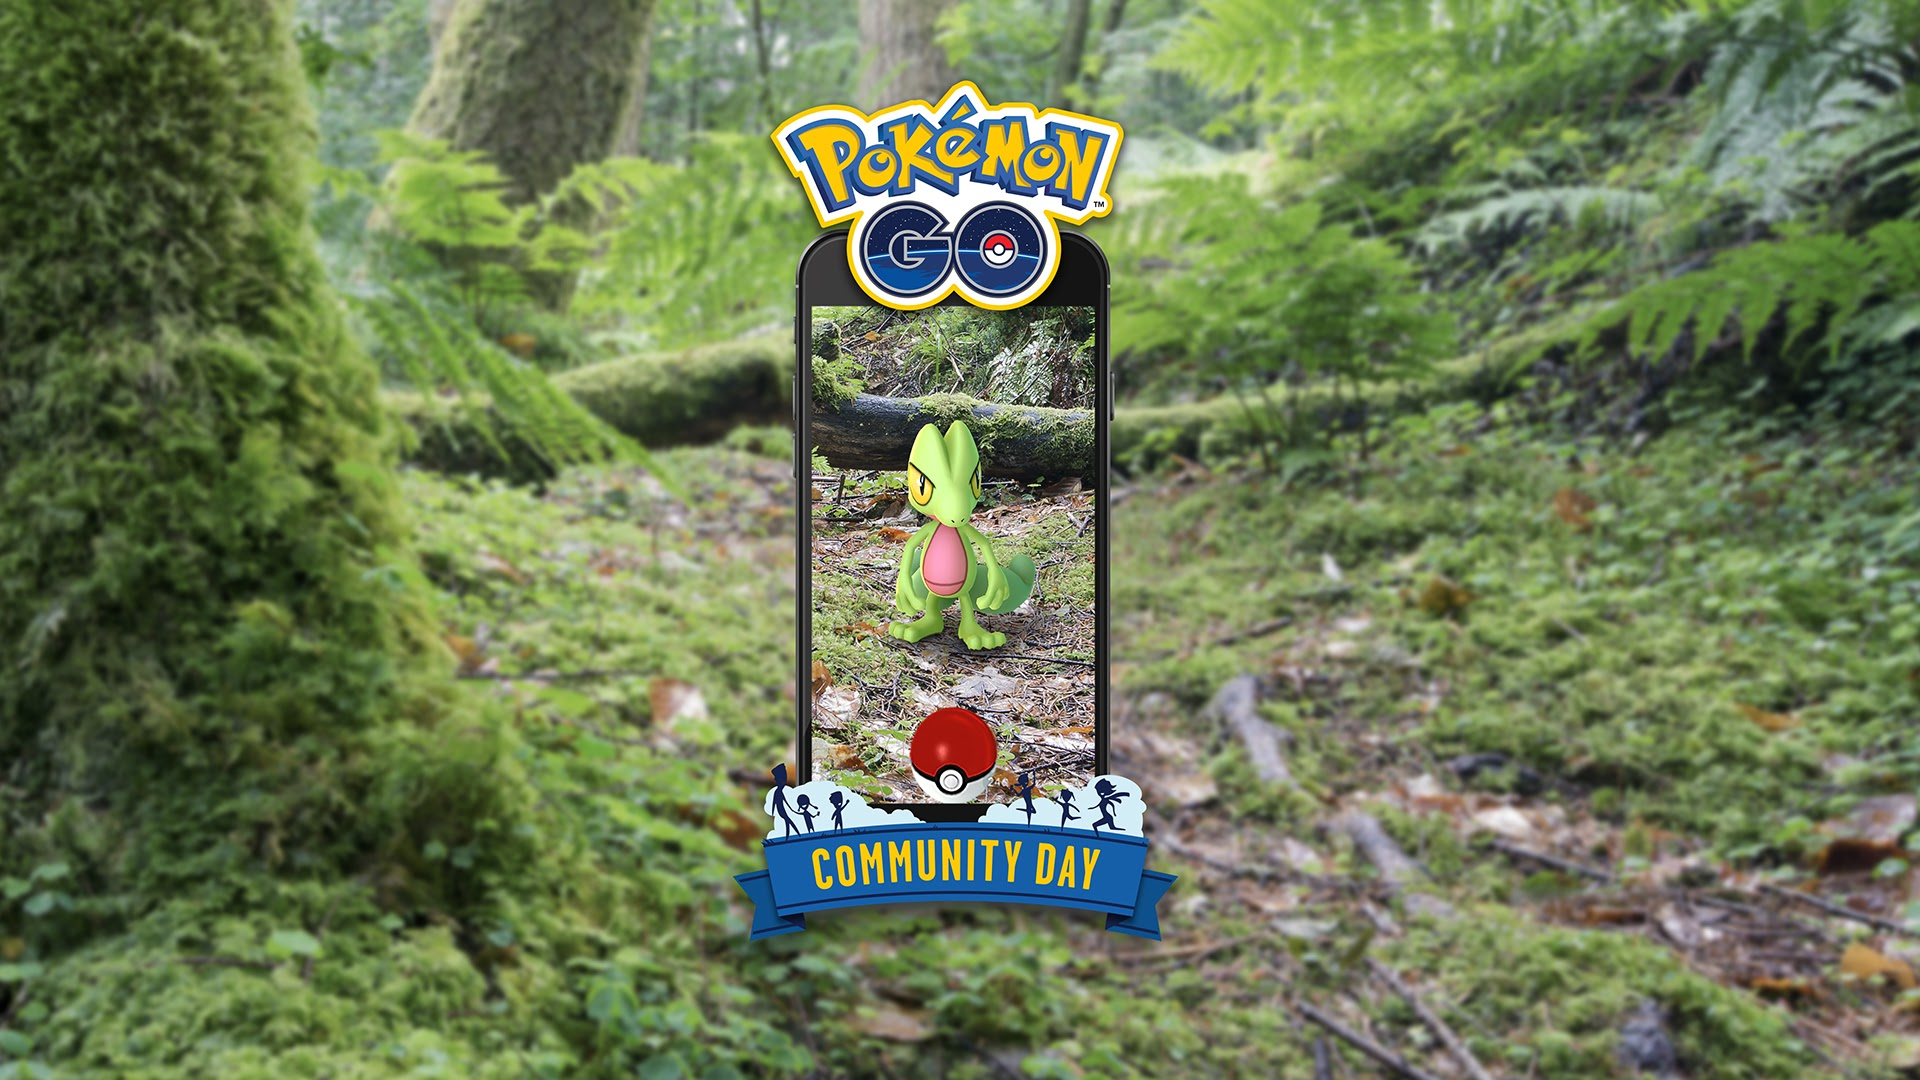 Pokemon Go Community Day event start time and event rewards: shiny Treecko and Sceptile, fast egg hatching, exclusive move